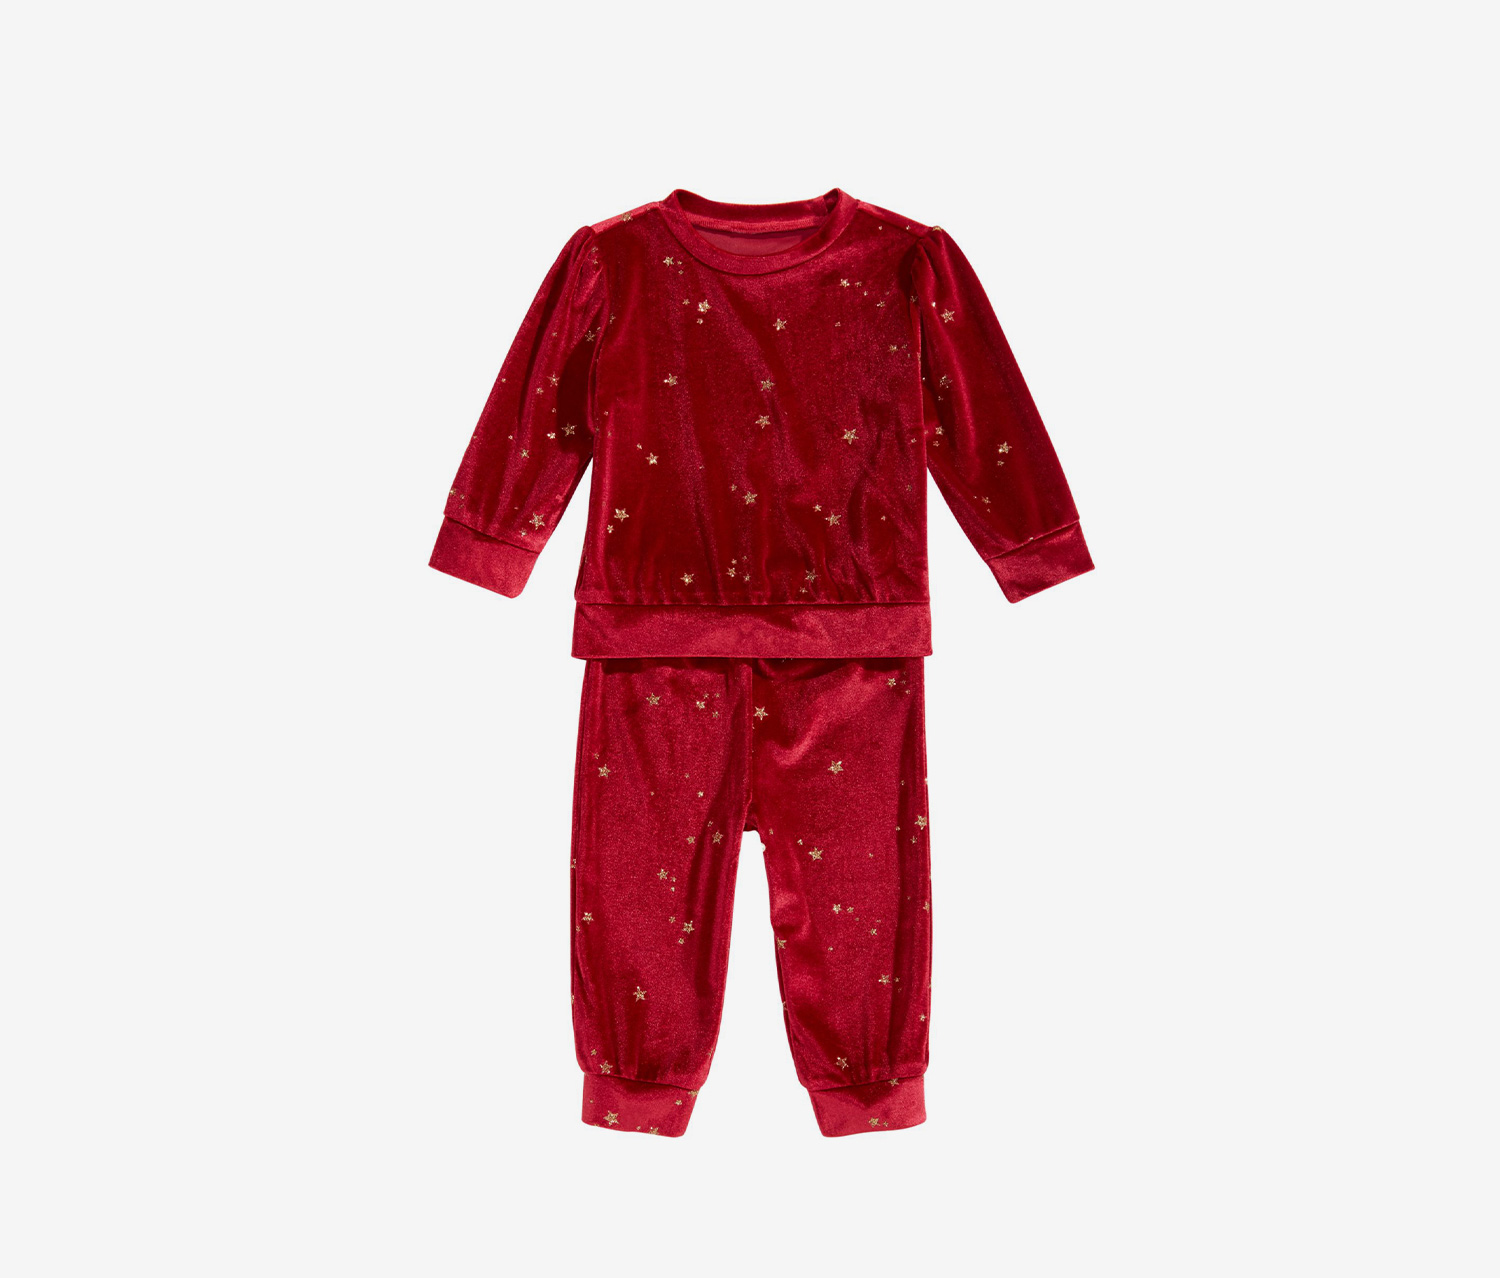 Baby Girls 2 Piece Glitter Velour Sweatshirt & Pants Set, Dark Ruby